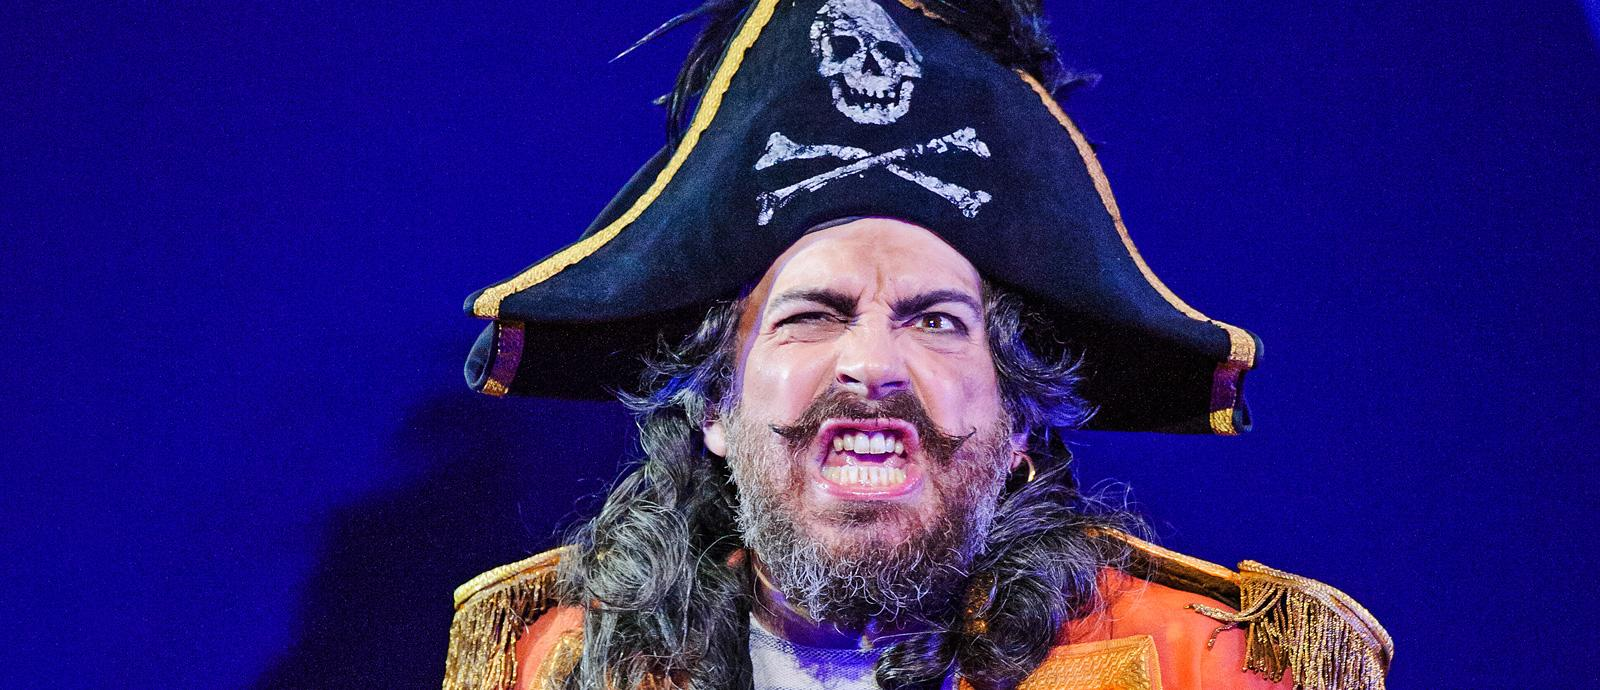 ENO's The Pirates of Penzance - Joshua Bloom as the Pirate King . Photo by Tristram Kenton